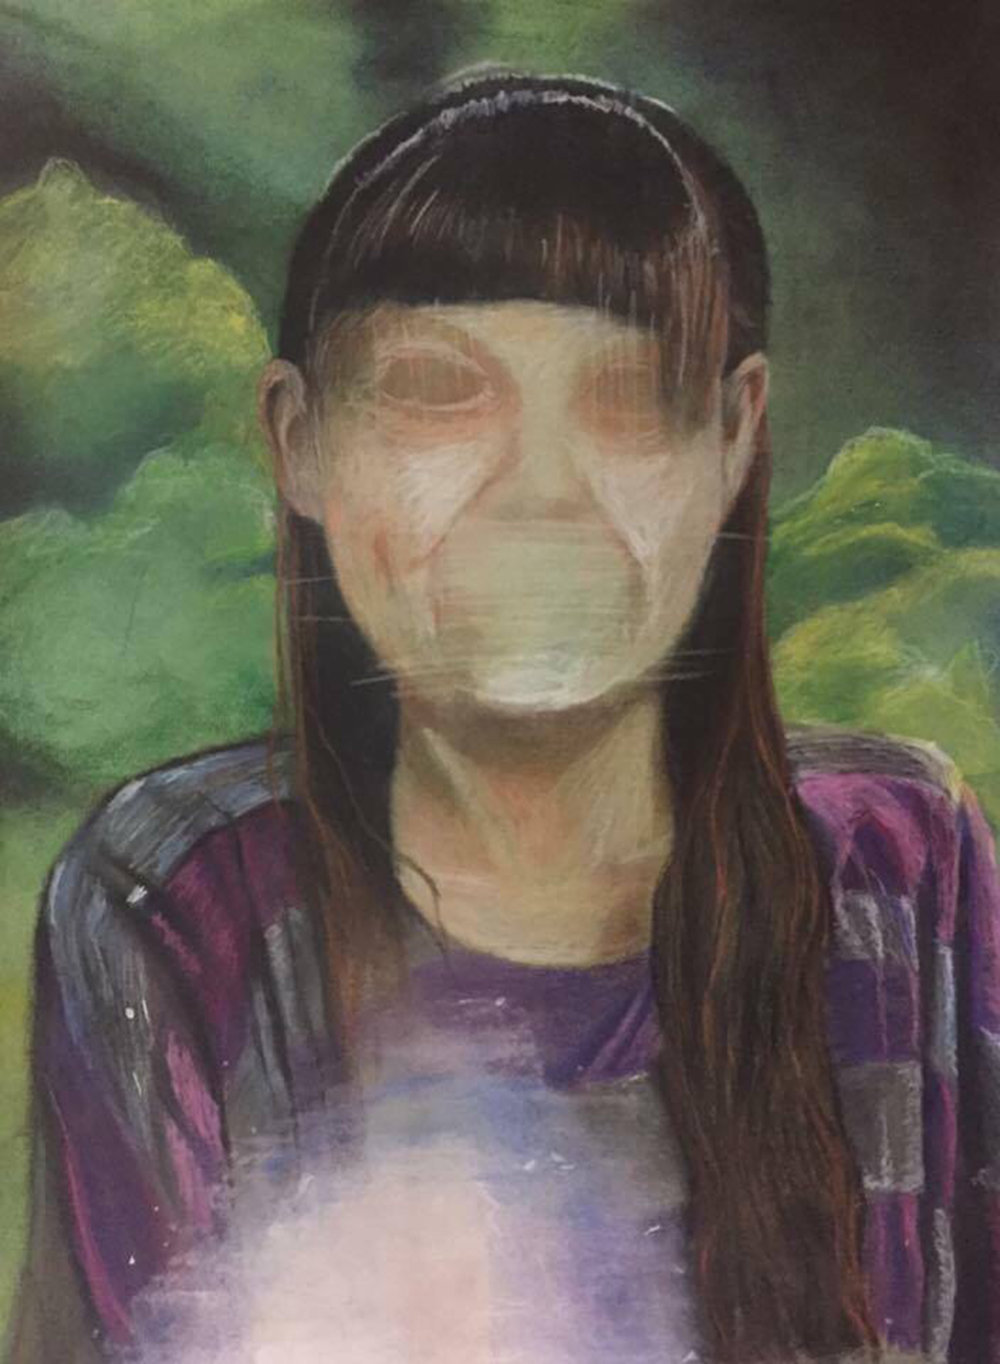 """Anna."" Portrait of a young girl with her face purposefully distorted. There is a white circle of glare in the lower foreground which is a deliberate part of the painting. The girl has long brown hair and is wearing a purple and gray striped shirt. The background behind her is green and reminiscent of clumps of trees. The surface of the work shows faint horizontal and vertical scratch-like markings over the areas of the eyes and mouth."